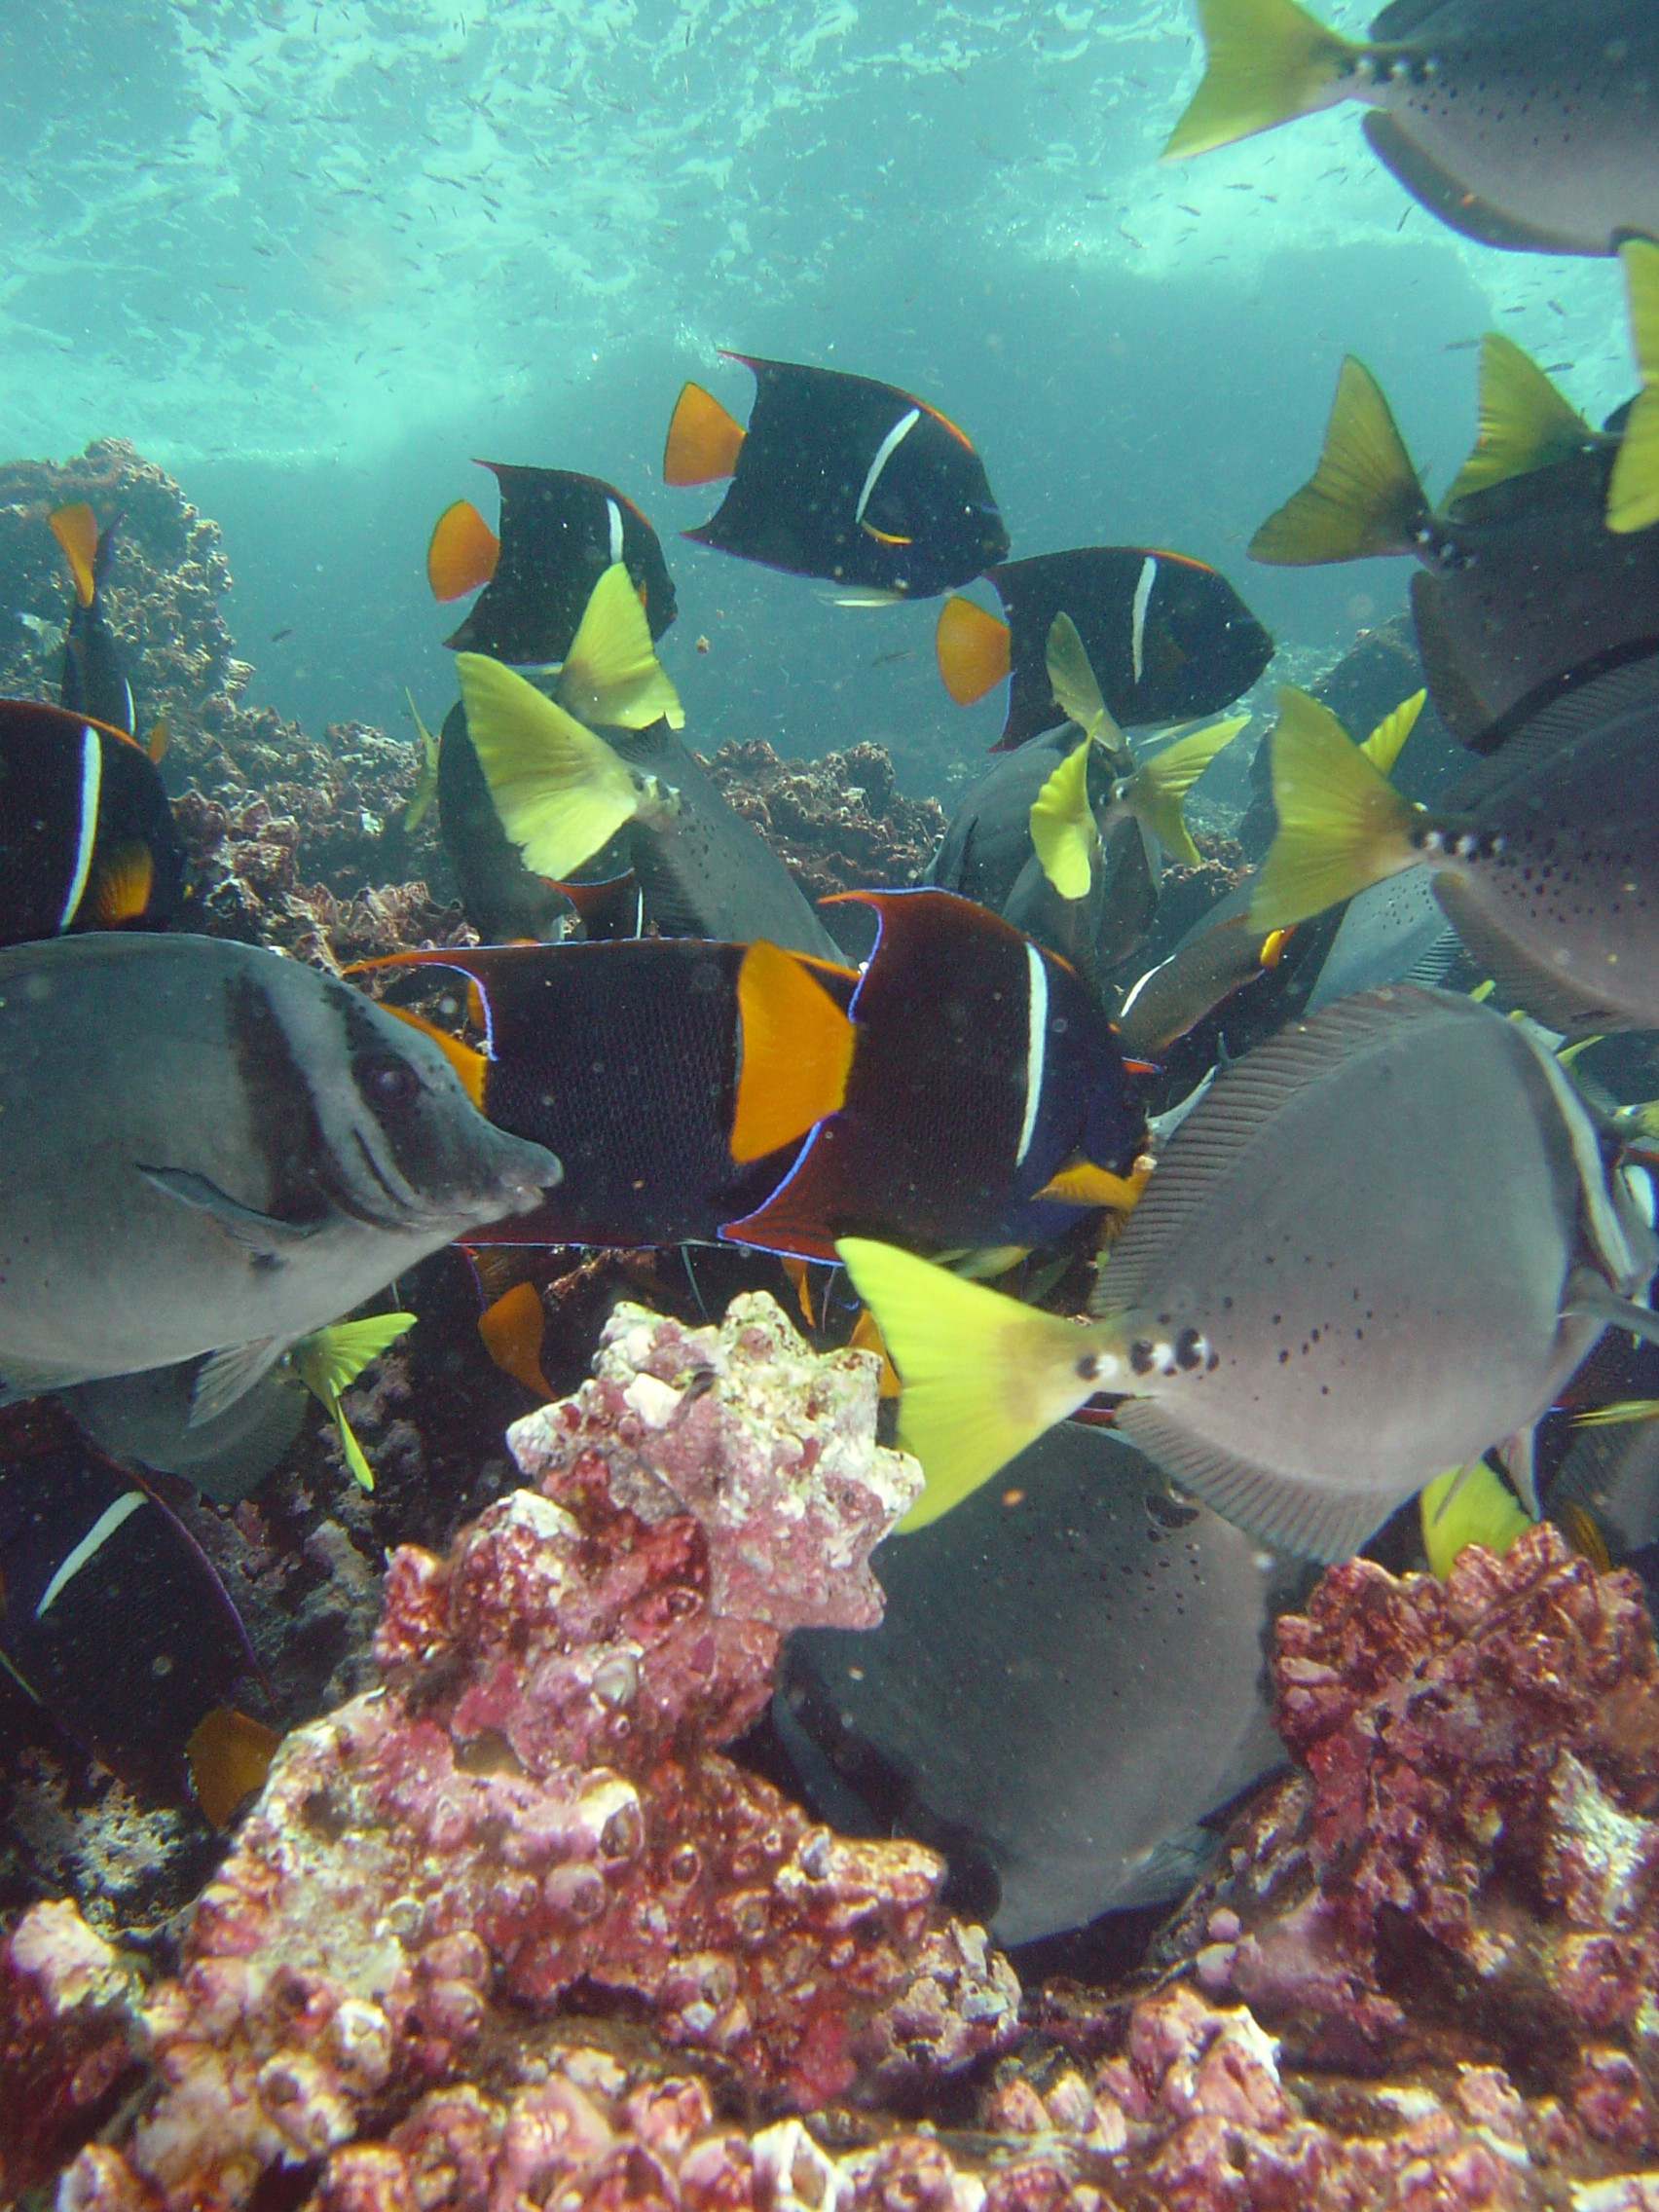 Colorful Underwater Galapagos Islands